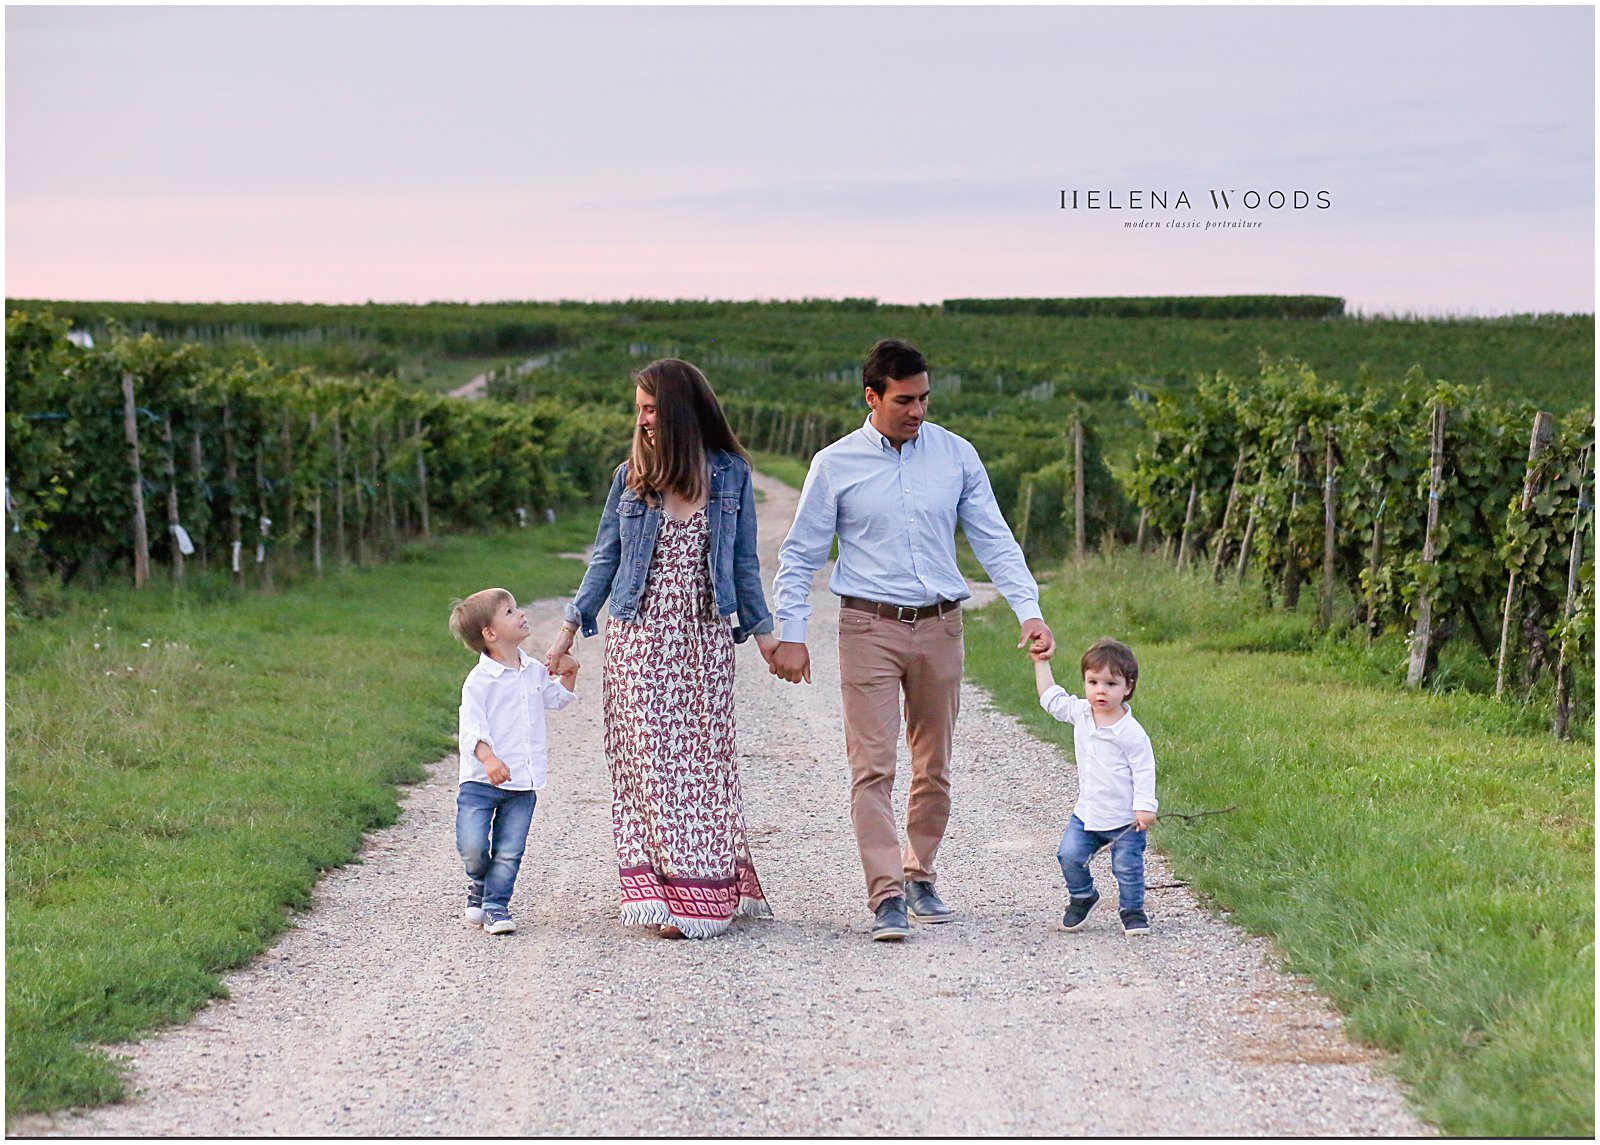 portraits in the vineyards of Wettolsheim Alsace France with Family Photographer Helena Woods